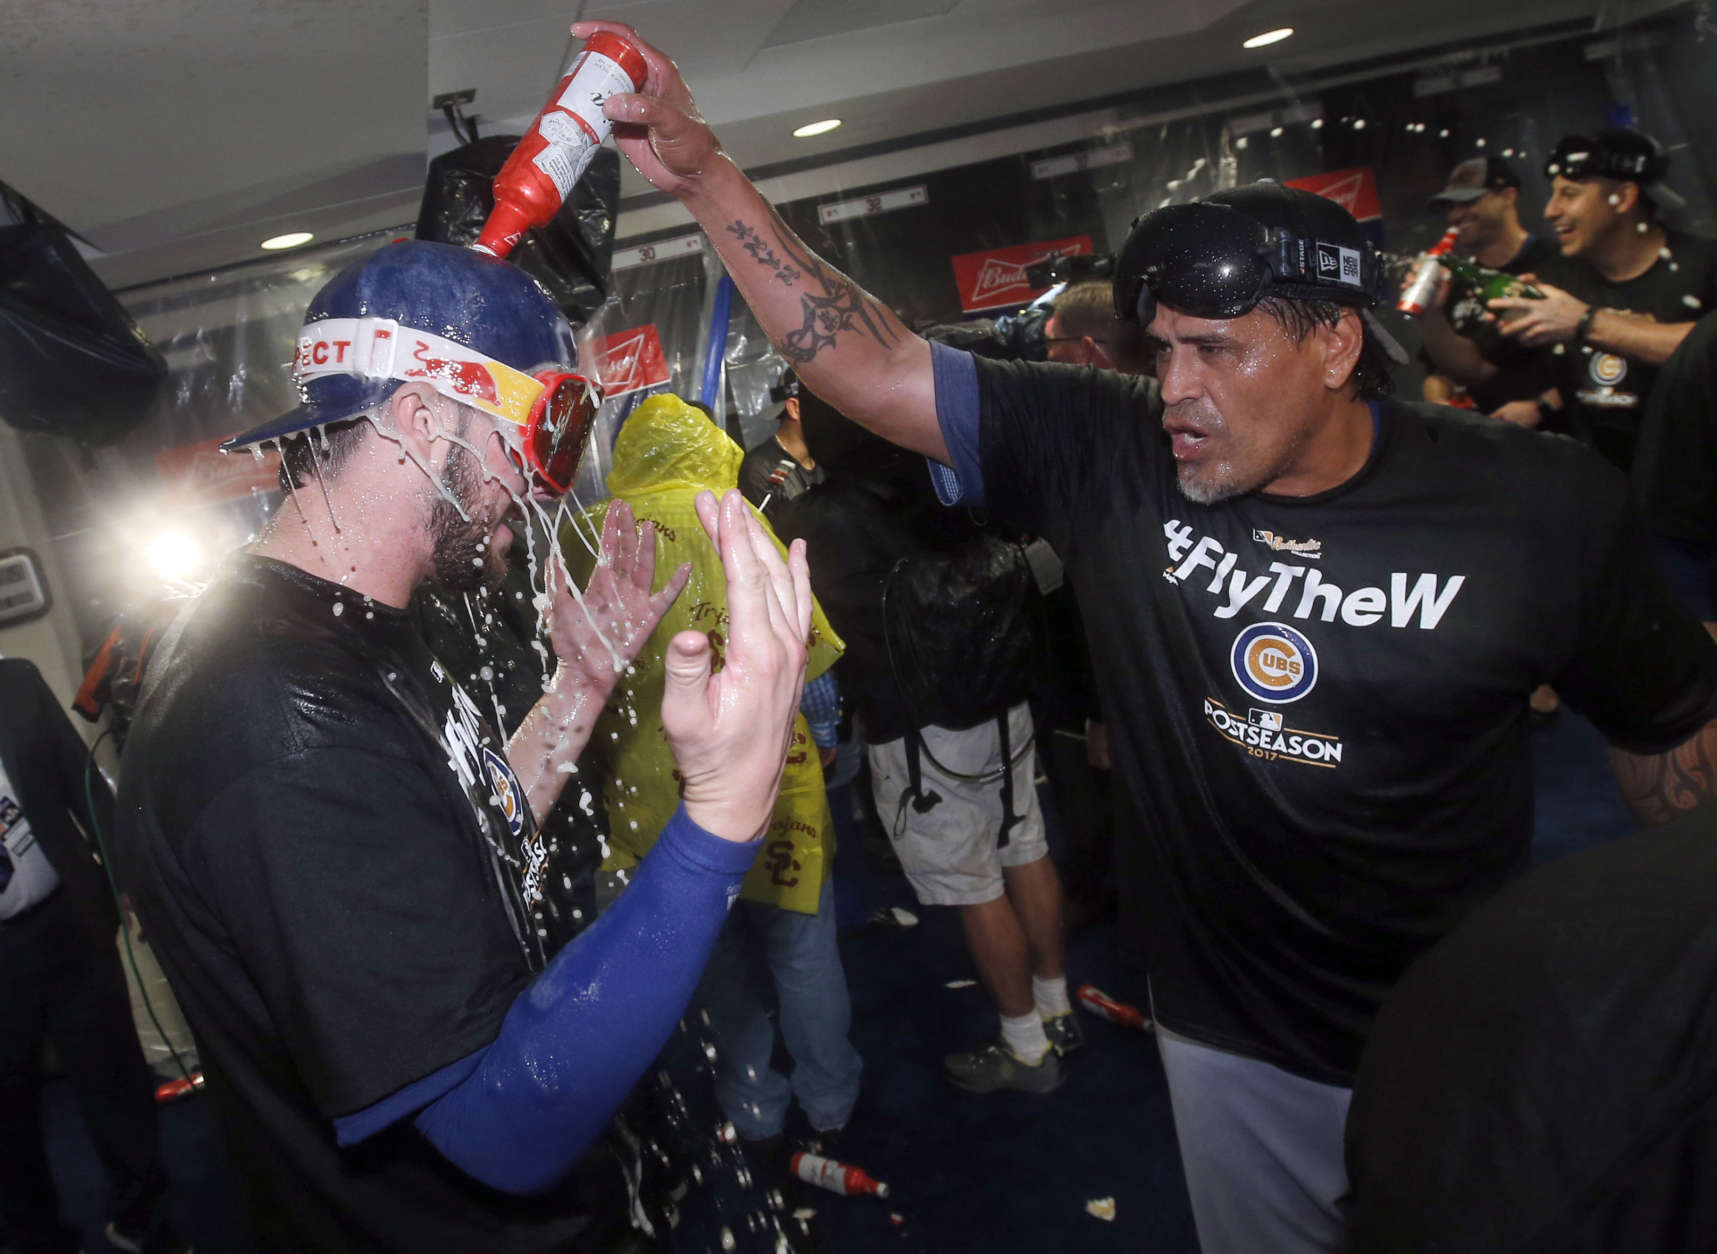 Chicago Cubs' Kris Bryant, left, is doused by Henry Blanco as they celebrate after the Cubs defeated the Washington Nationals 9-8 in Game 5, to win baseball's National League Division Series, at Nationals Park, Friday, Oct. 13, 2017, in Washington.  (AP Photo/Alex Brandon)